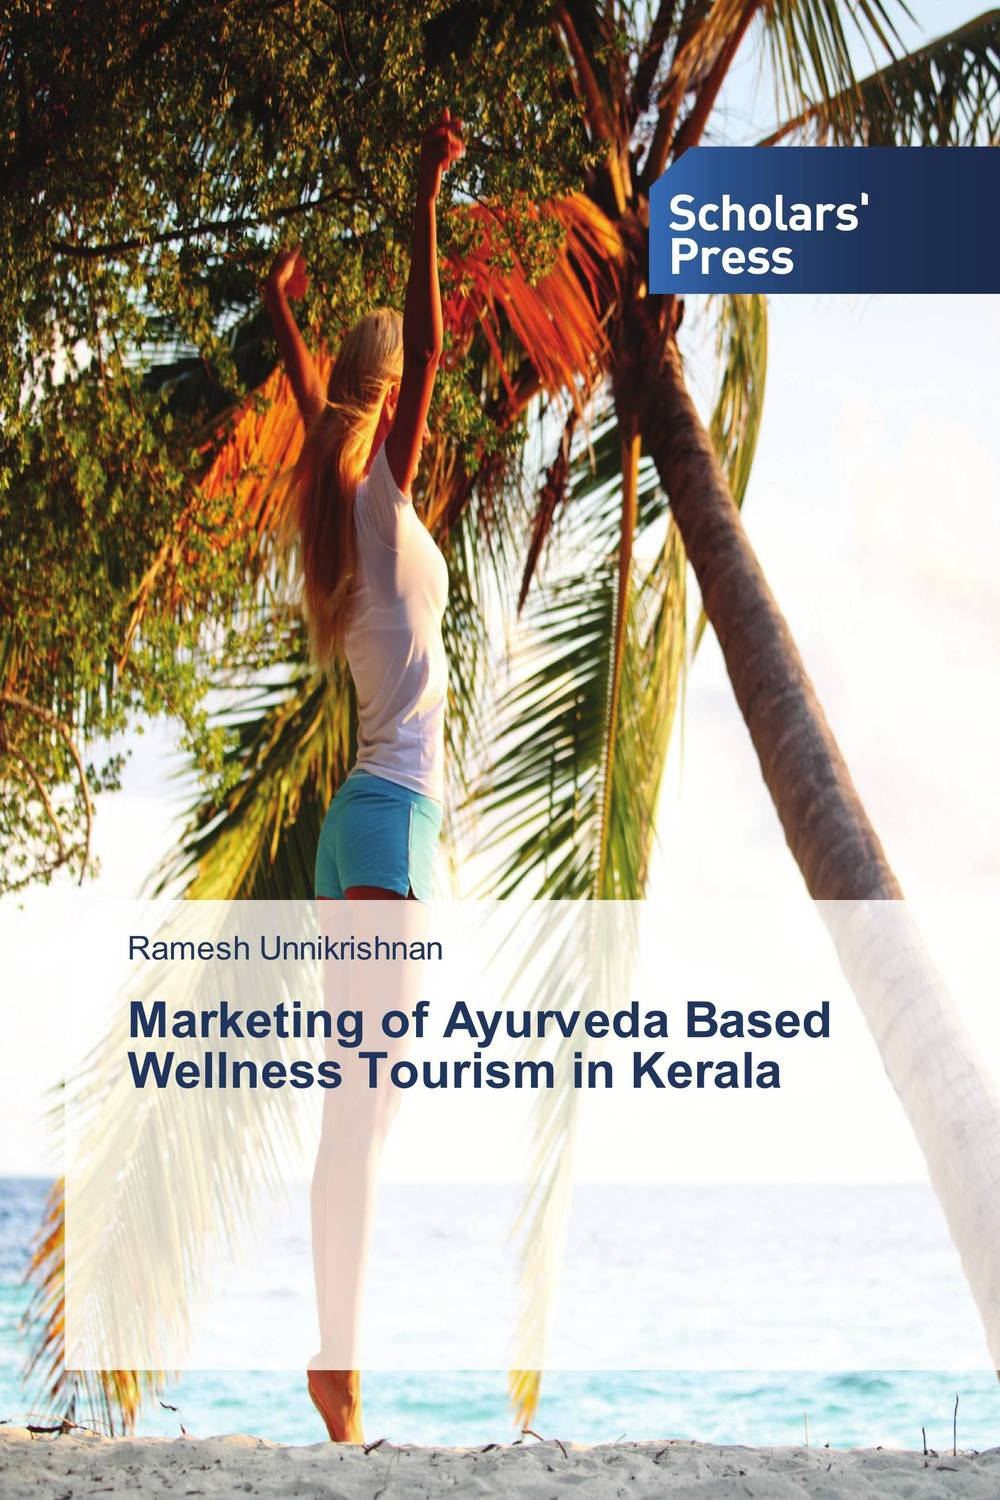 Marketing of Ayurveda Based Wellness Tourism in Kerala benign enlargement of prostate gland bep in ayurveda